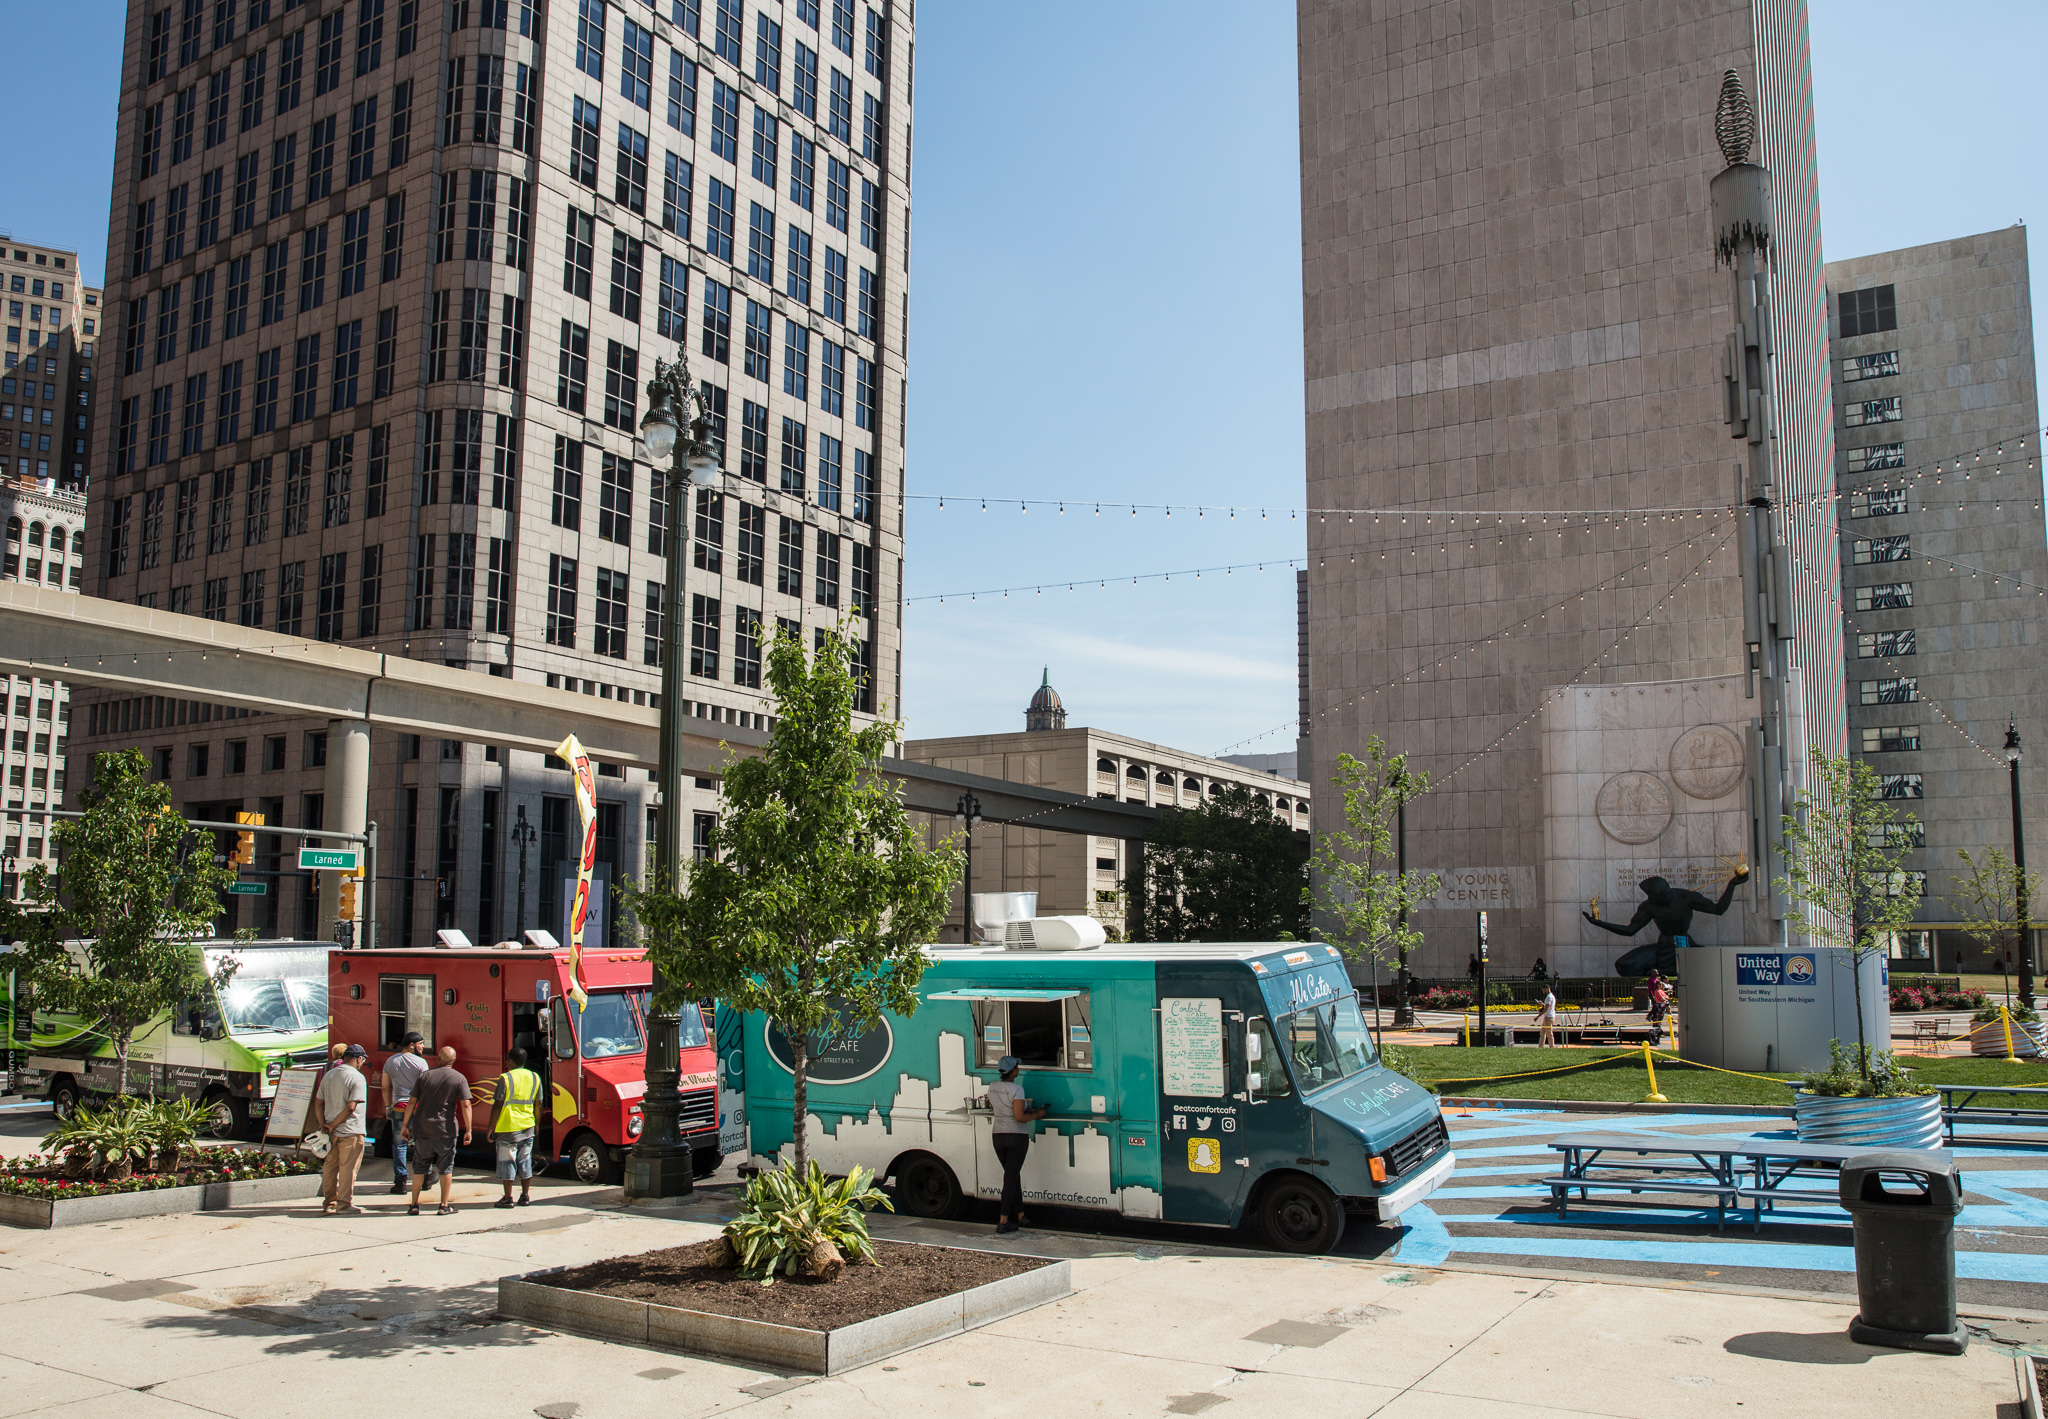 The great new world discussion thread page 103 - Open Thread Which Detroit Streets Should Be Closed To Traffic